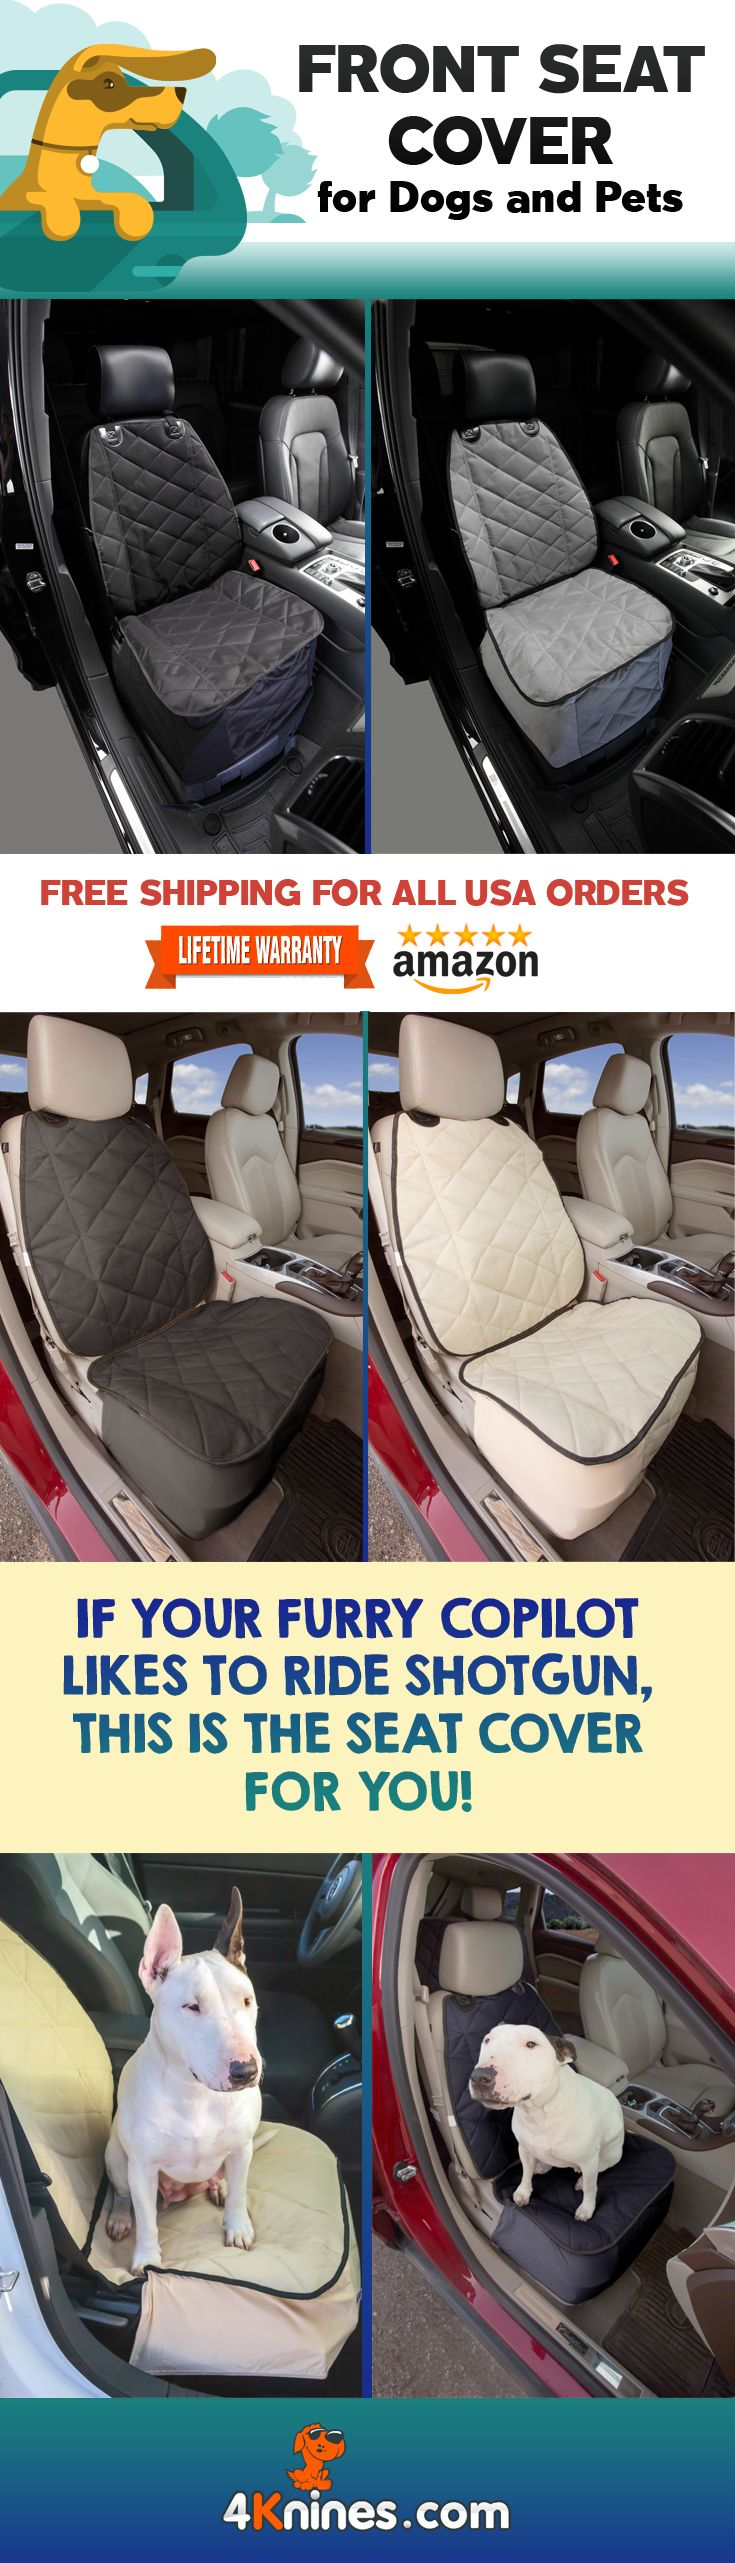 Protect your passenger seat from your furry copilot with a 4Knines Front Bucket Seat Cover http://4knines.com/pages/4knines-front-seat-covers  Available at 4Knines.com or on Amazon.com  If your pup likes to call shotgun, this cover will keep your seat clean and ready for a two legged passenger.